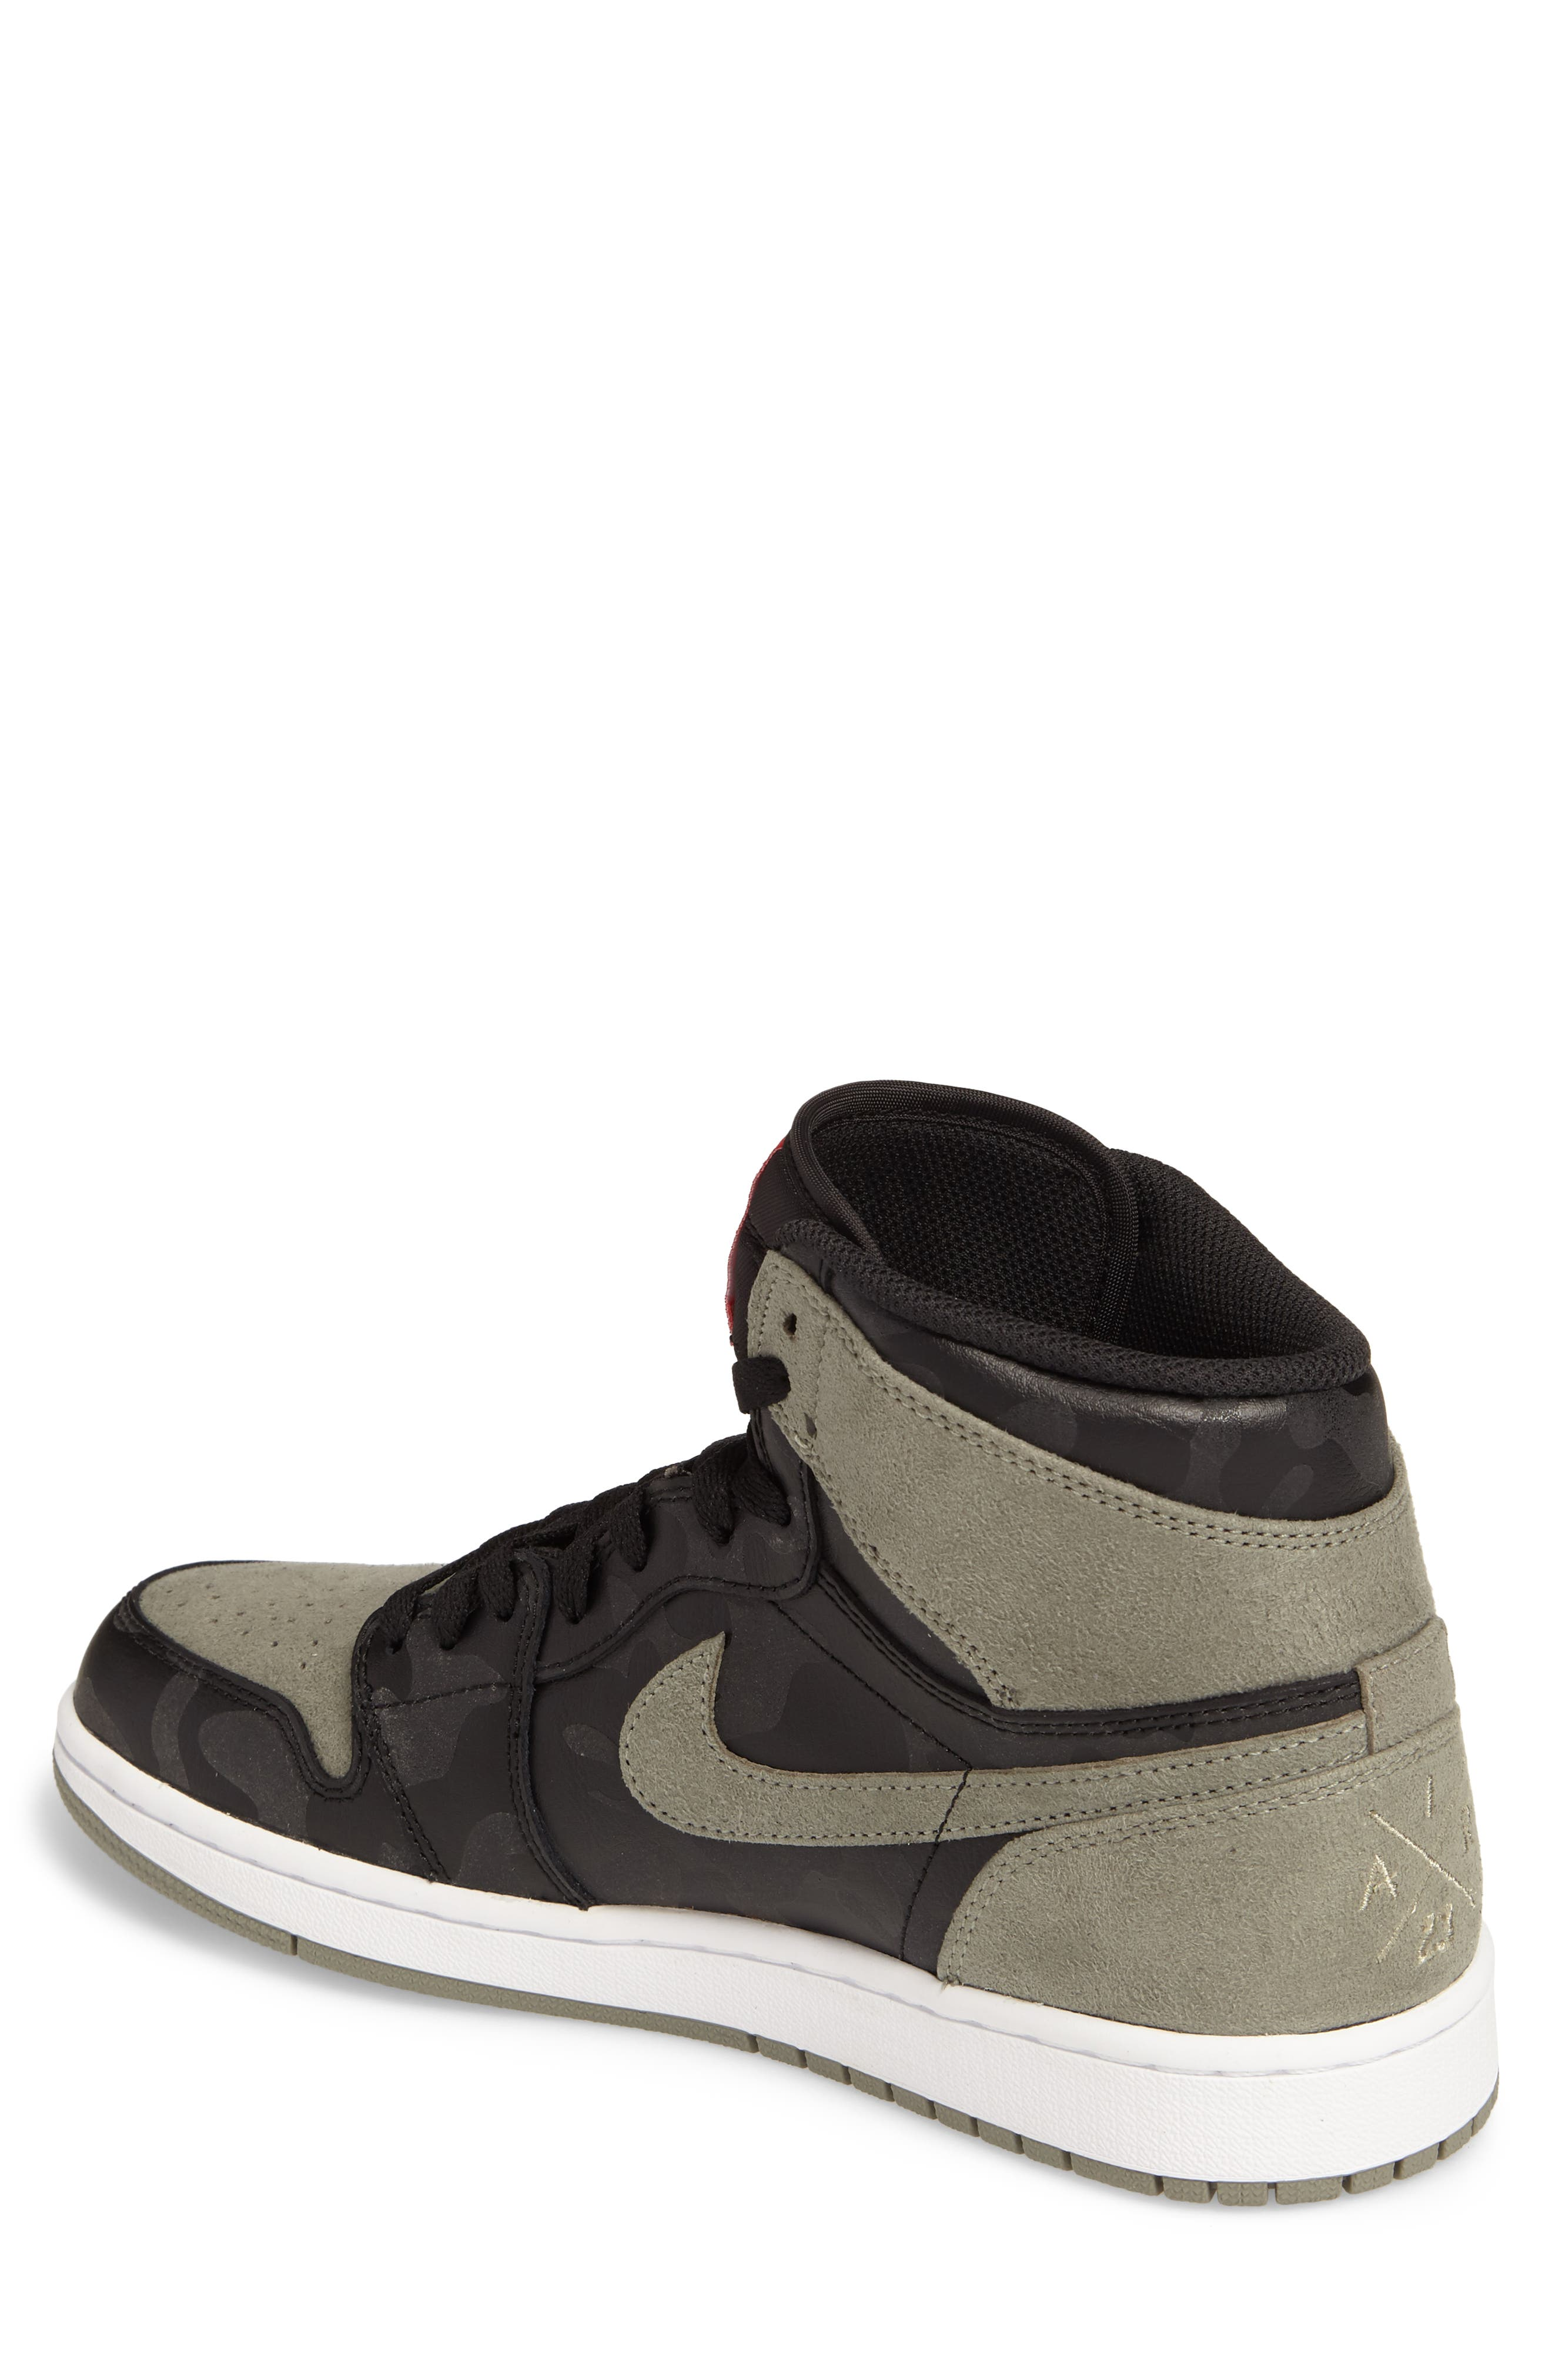 Air Jordan 1 Retro High Top Sneaker,                             Alternate thumbnail 2, color,                             Black/ Black